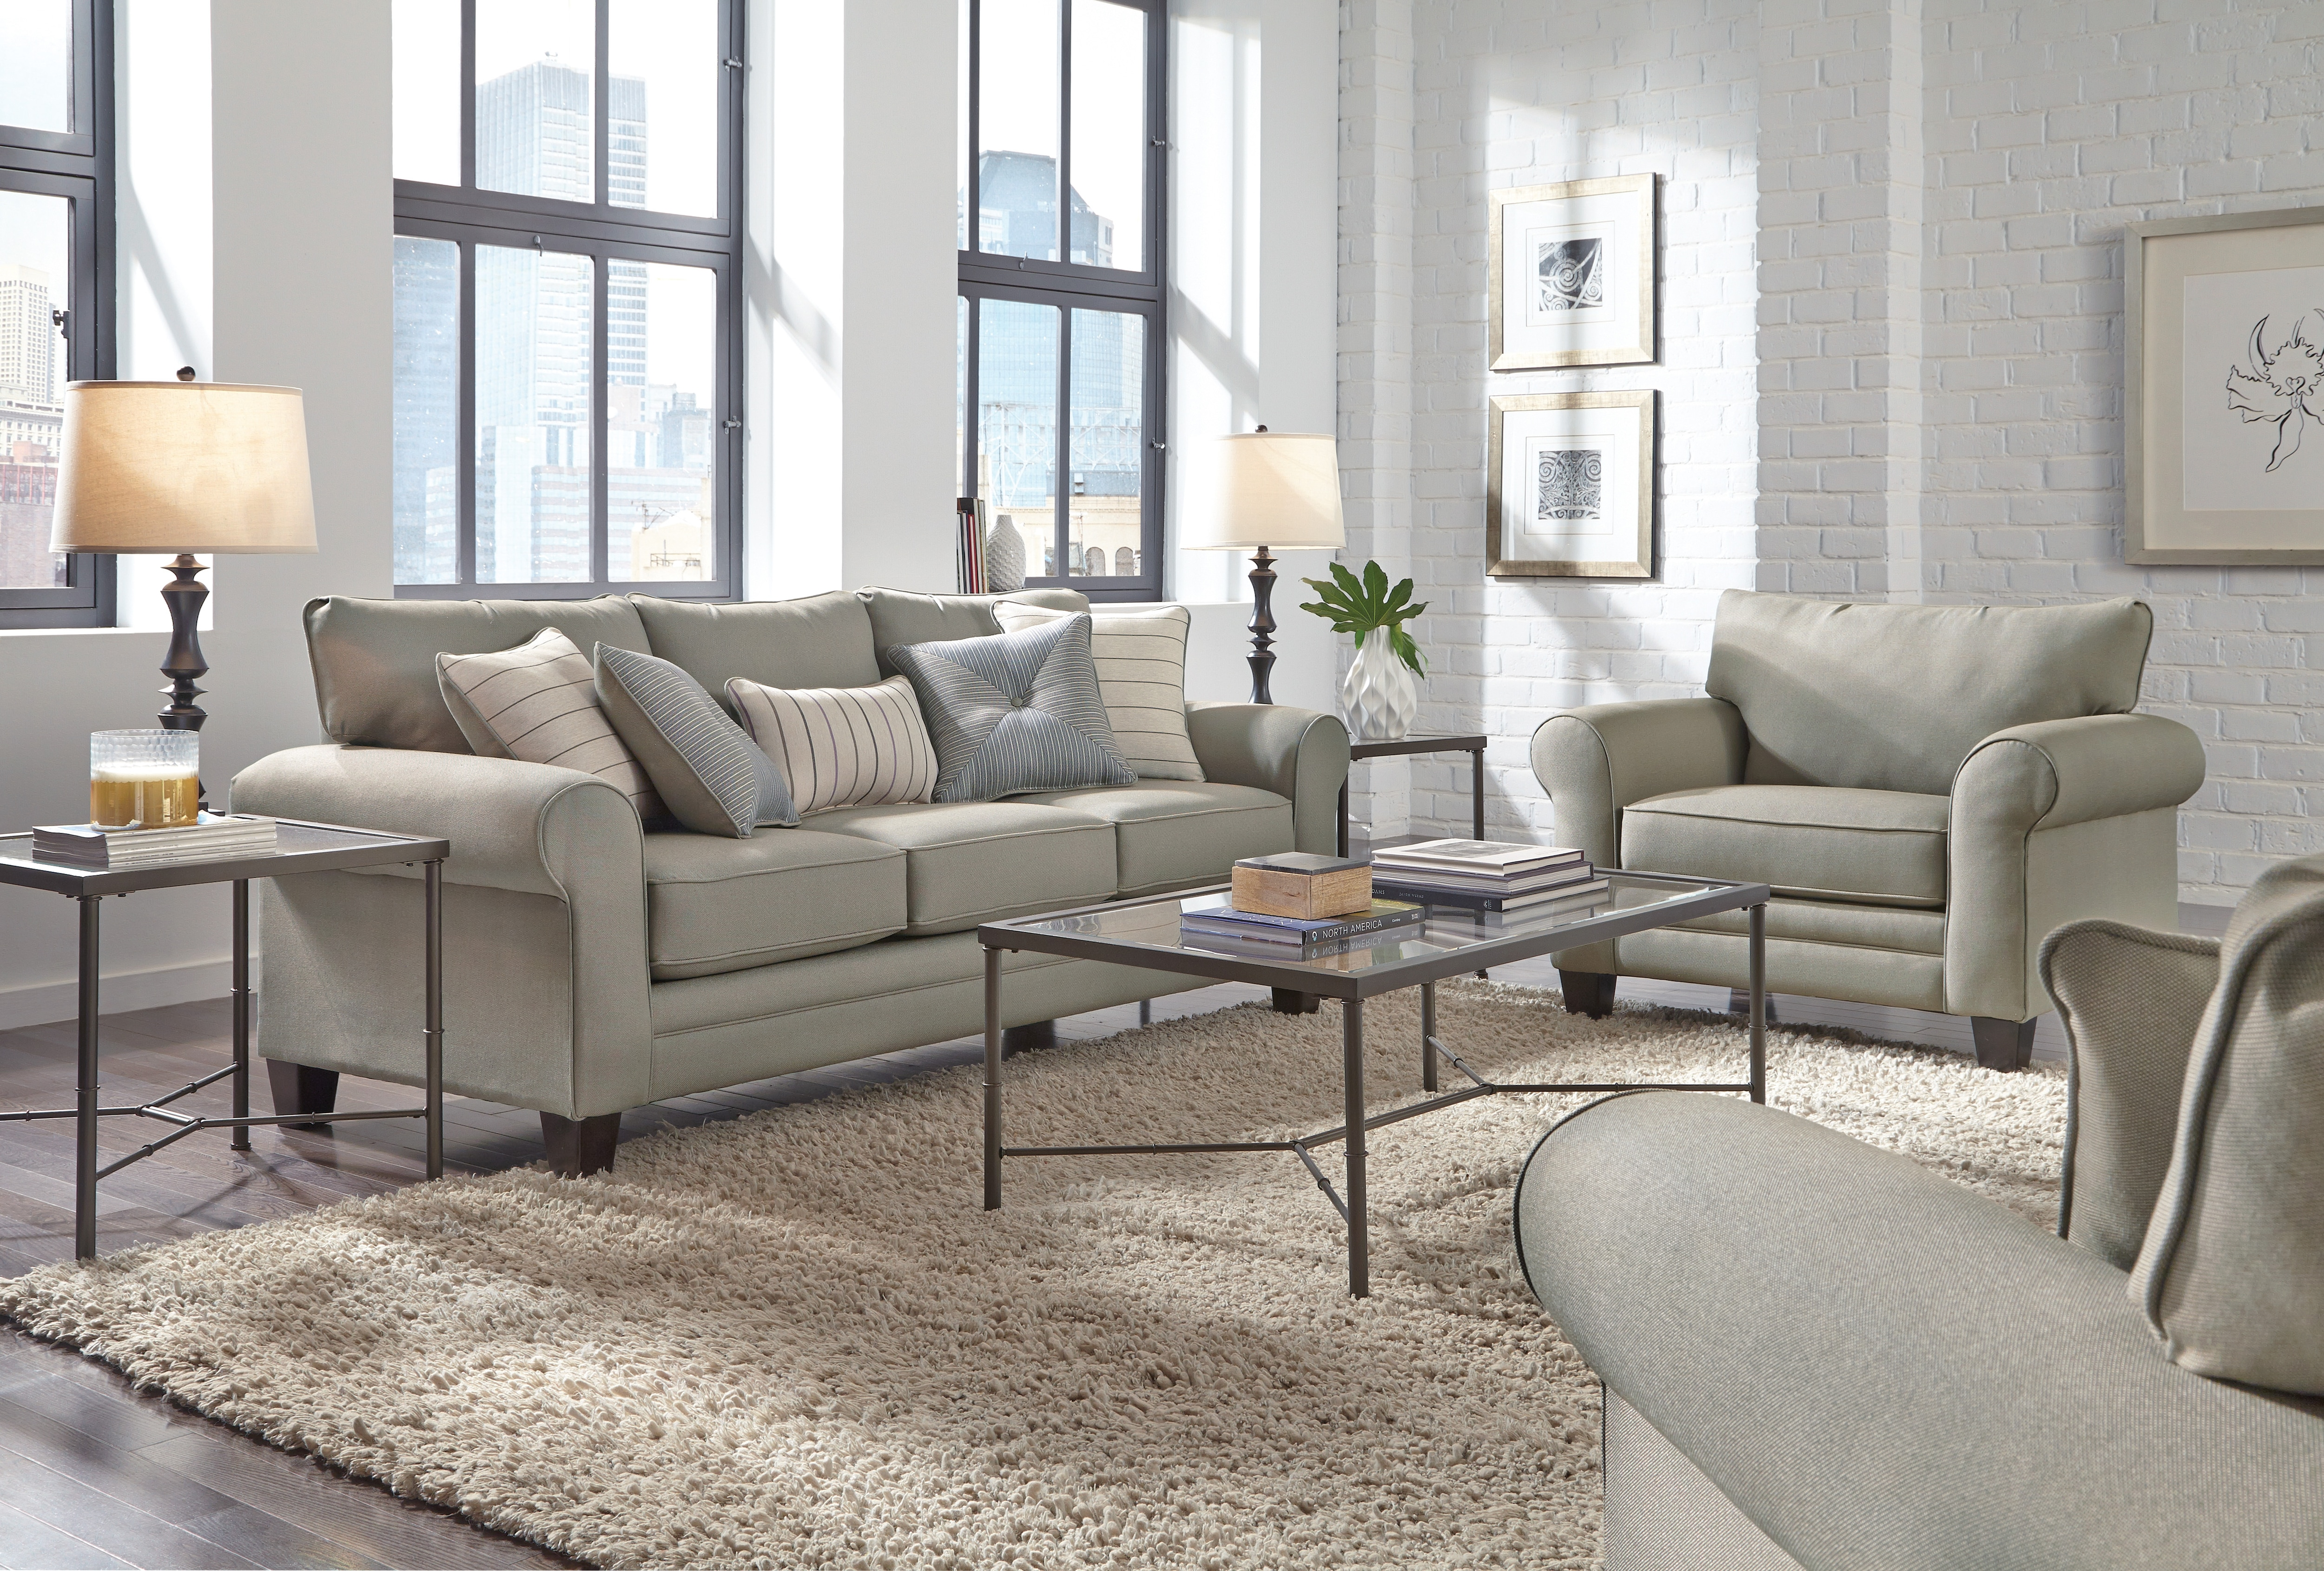 Aspire chair gray levin furniture for Levin furniture living room chairs